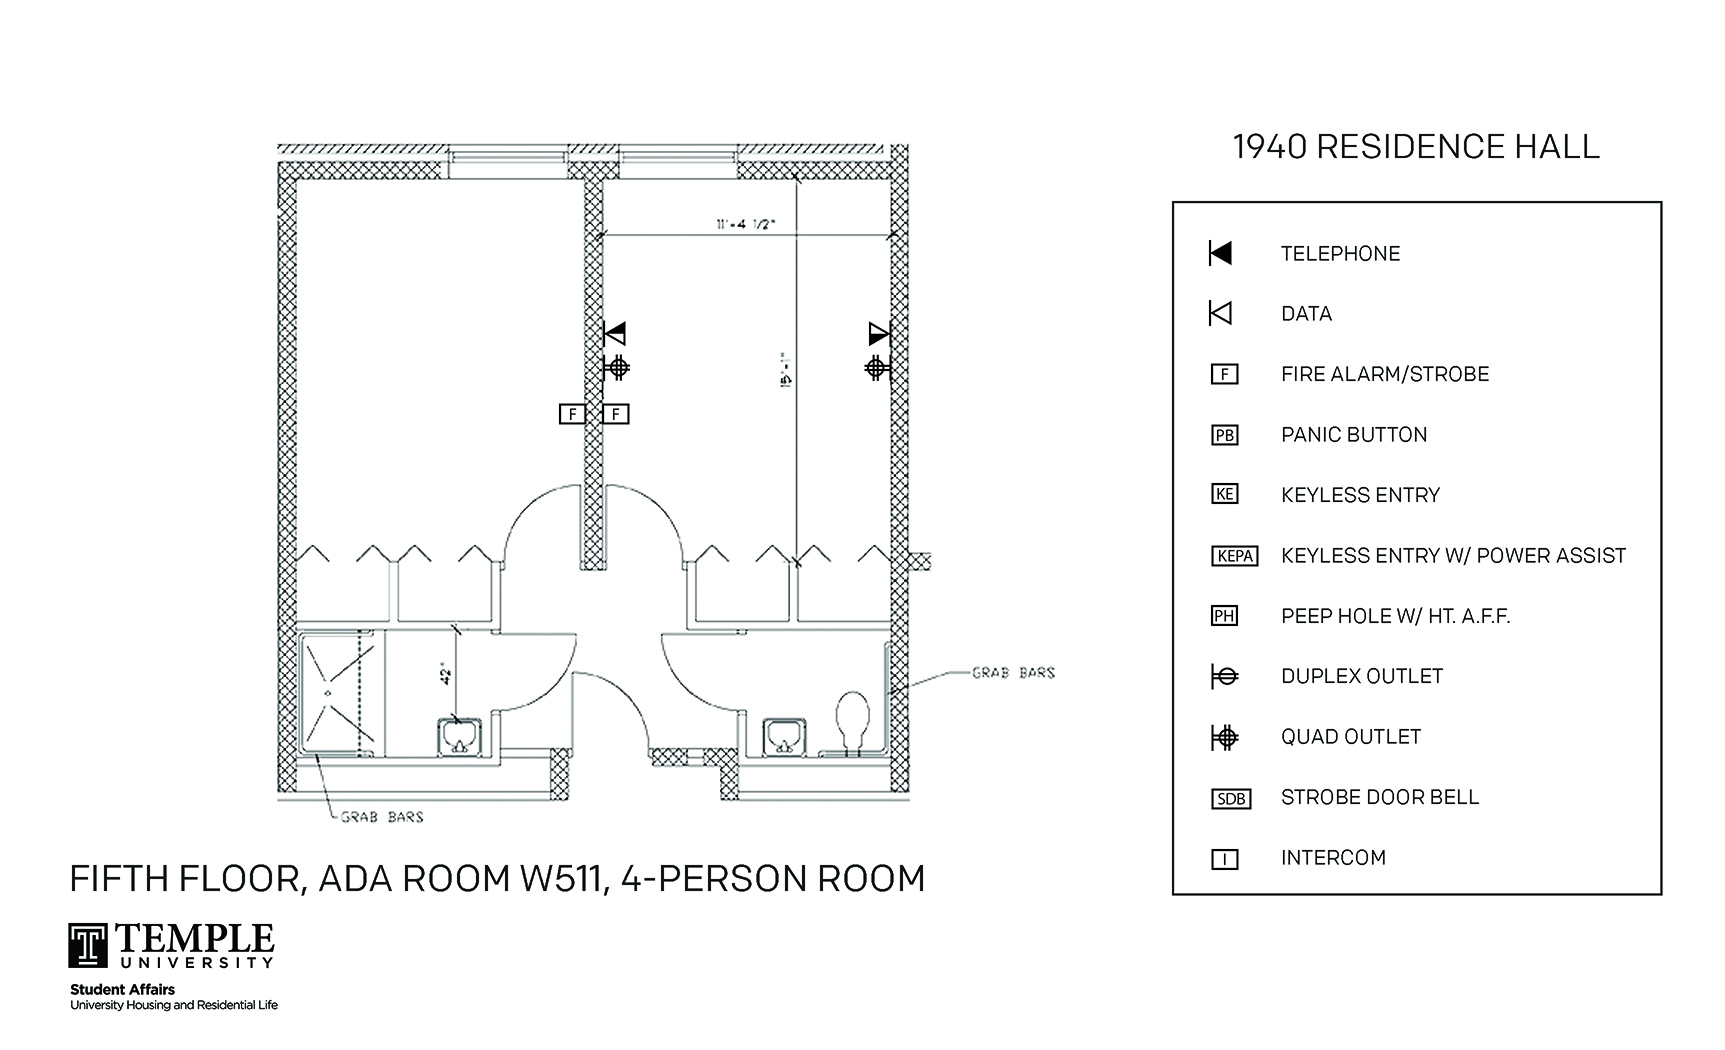 Accessible Room Diagrams: 4 person, 2 bedroom Suite - W511